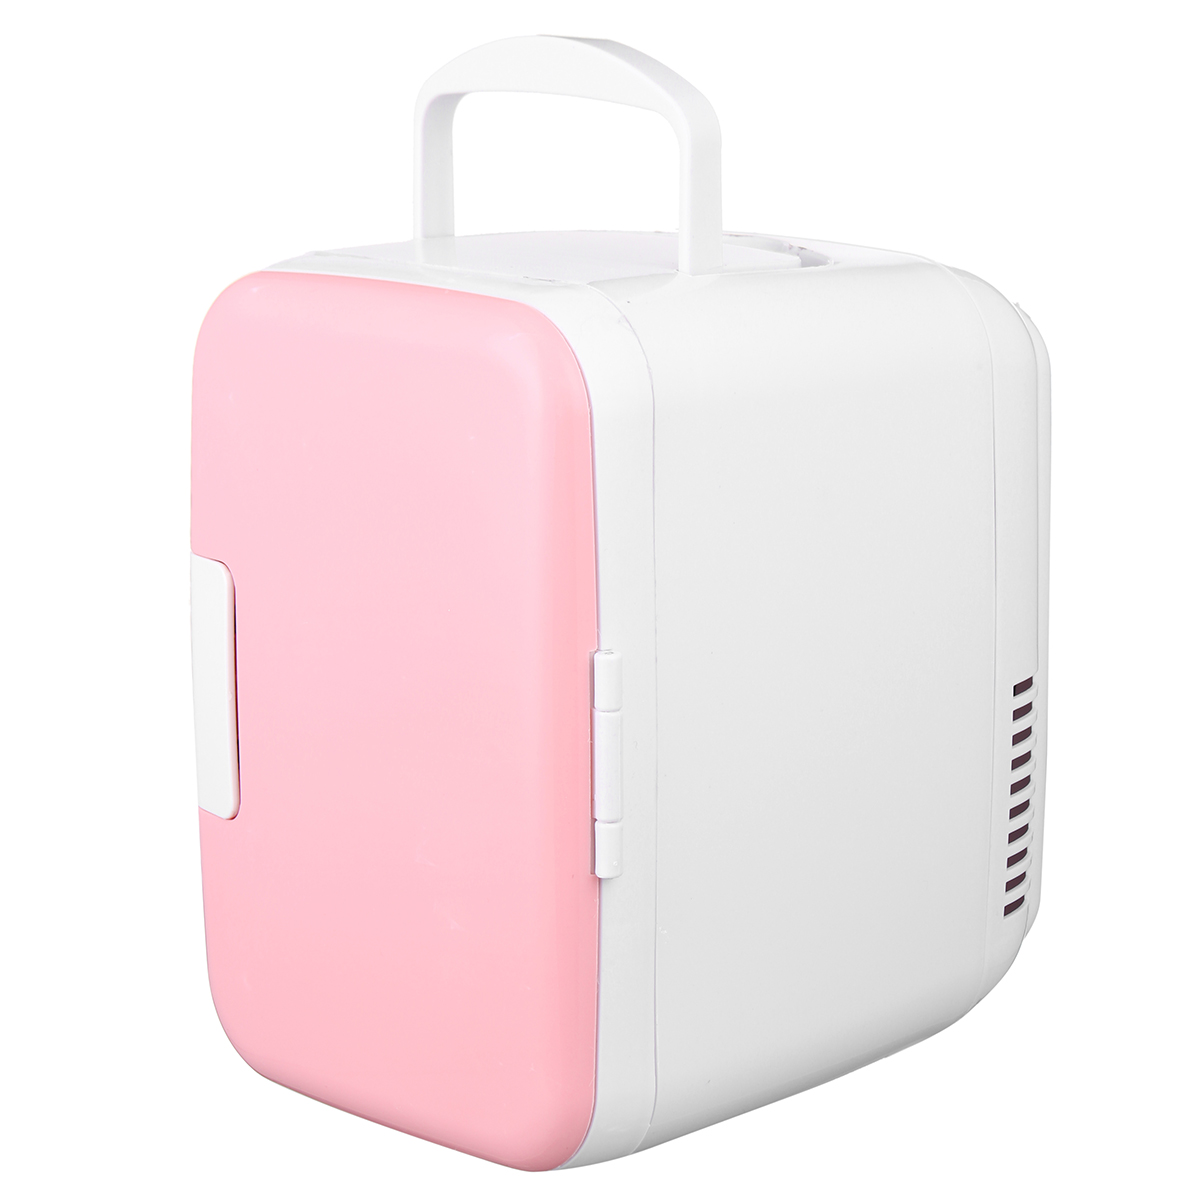 4L Portable Mini Fridge USB Freezer Refrigerator Cooler Warmer Auto Car Travel Outdoor Camping 37